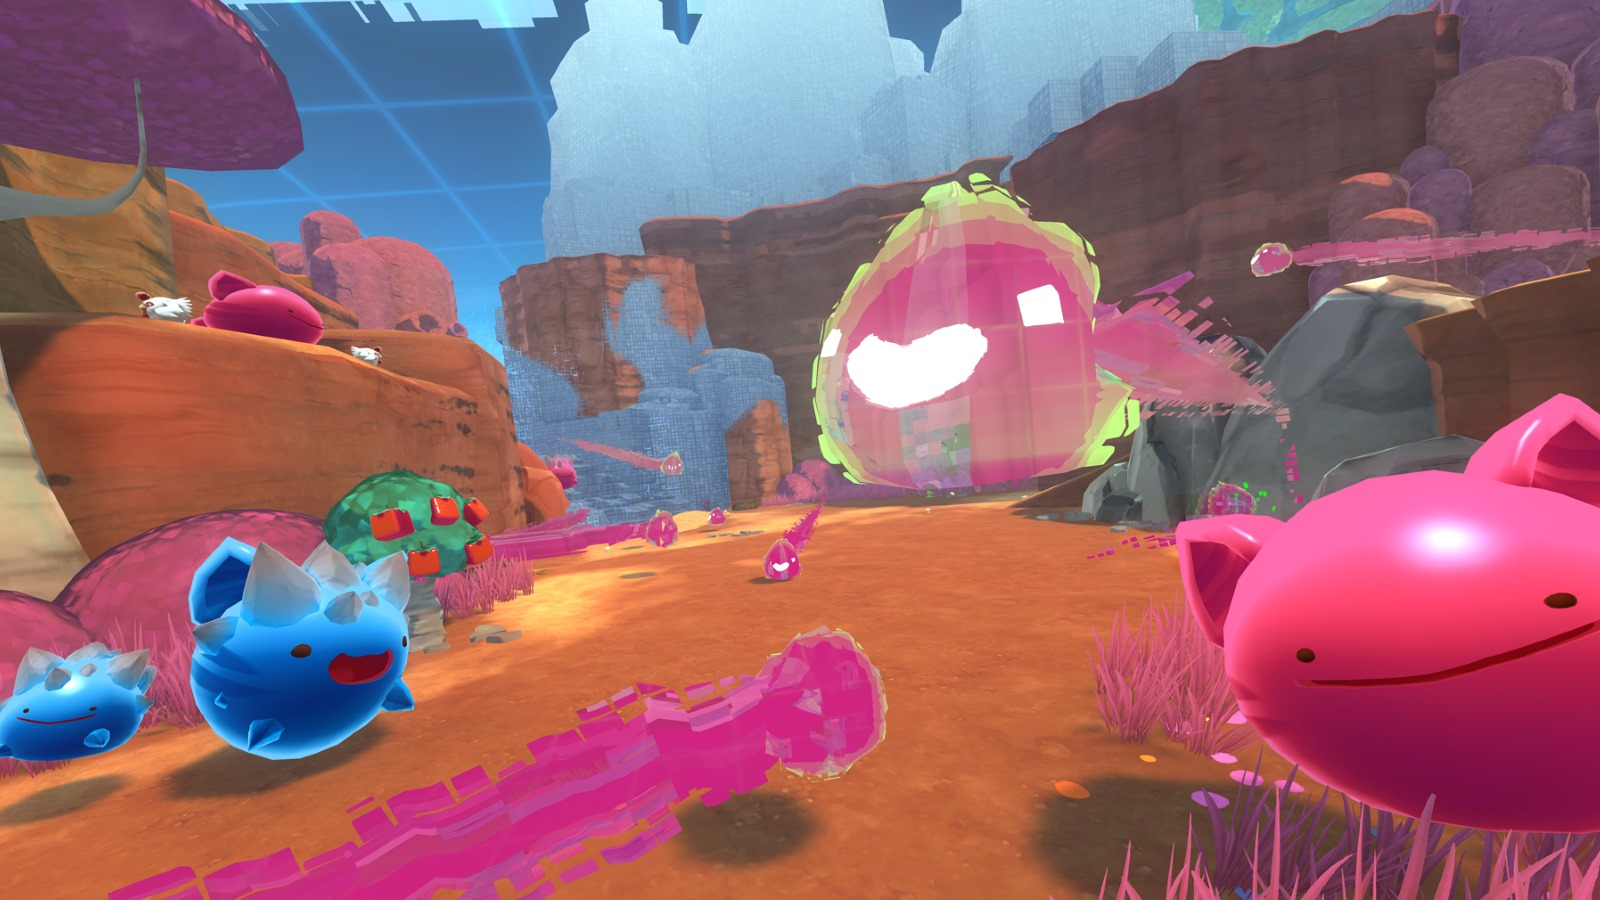 Slime Rancher expands for free into the jiggly glitch dimension